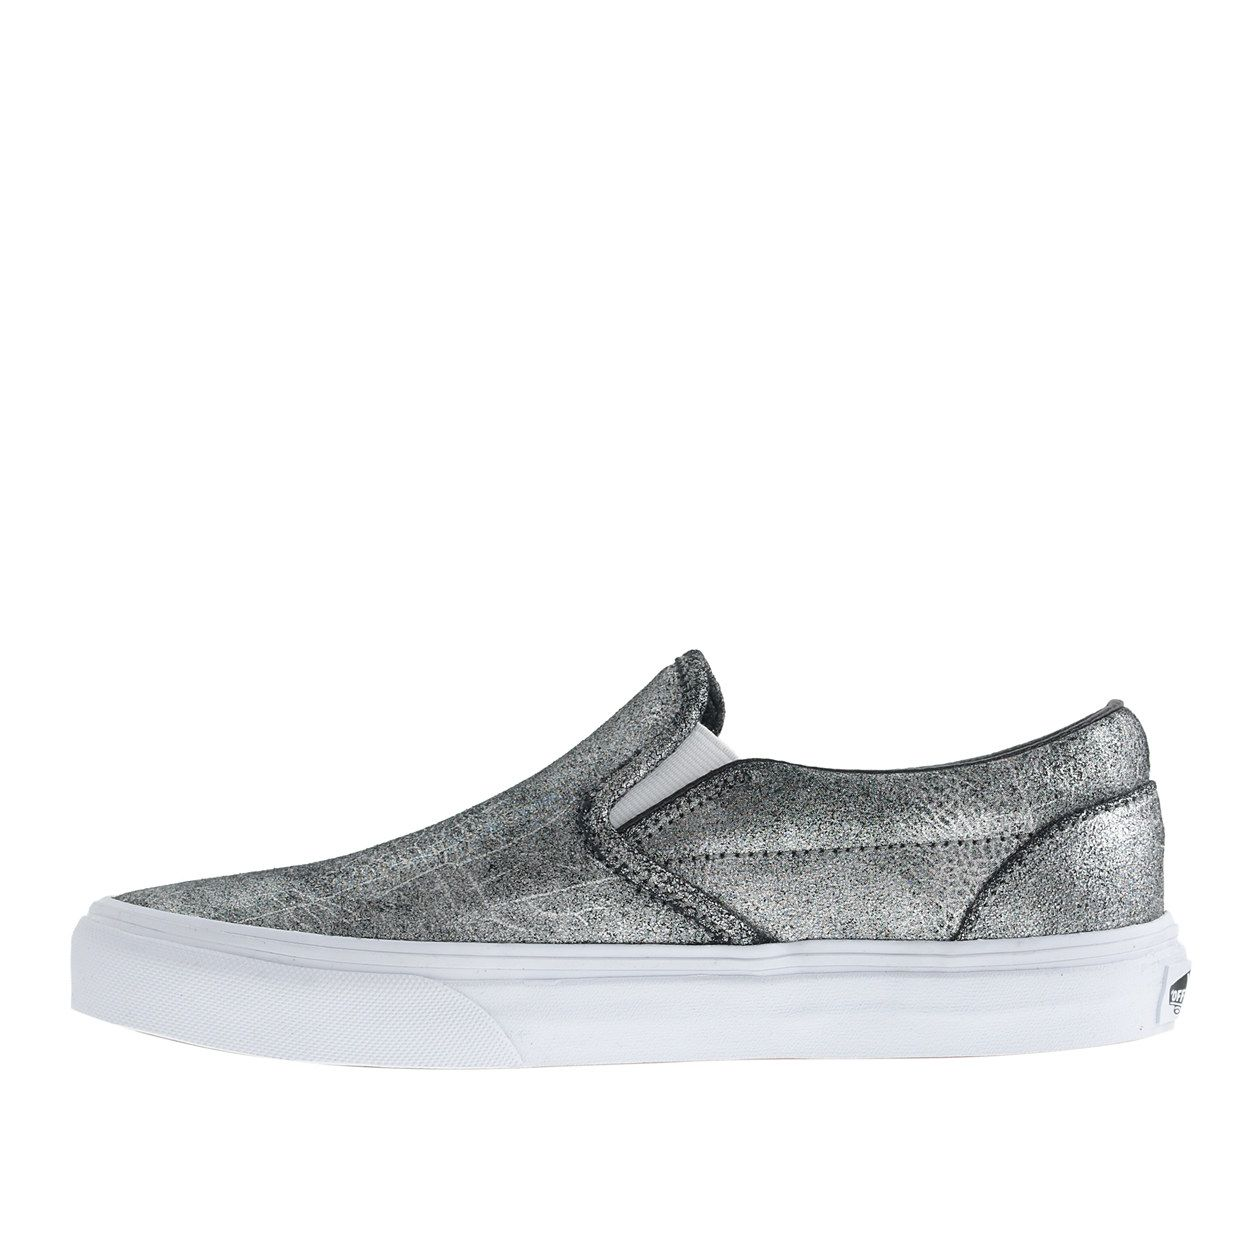 39eccbd4084 Unisex Vans® classic slip-on sneakers in metallic silver leather   sneakers